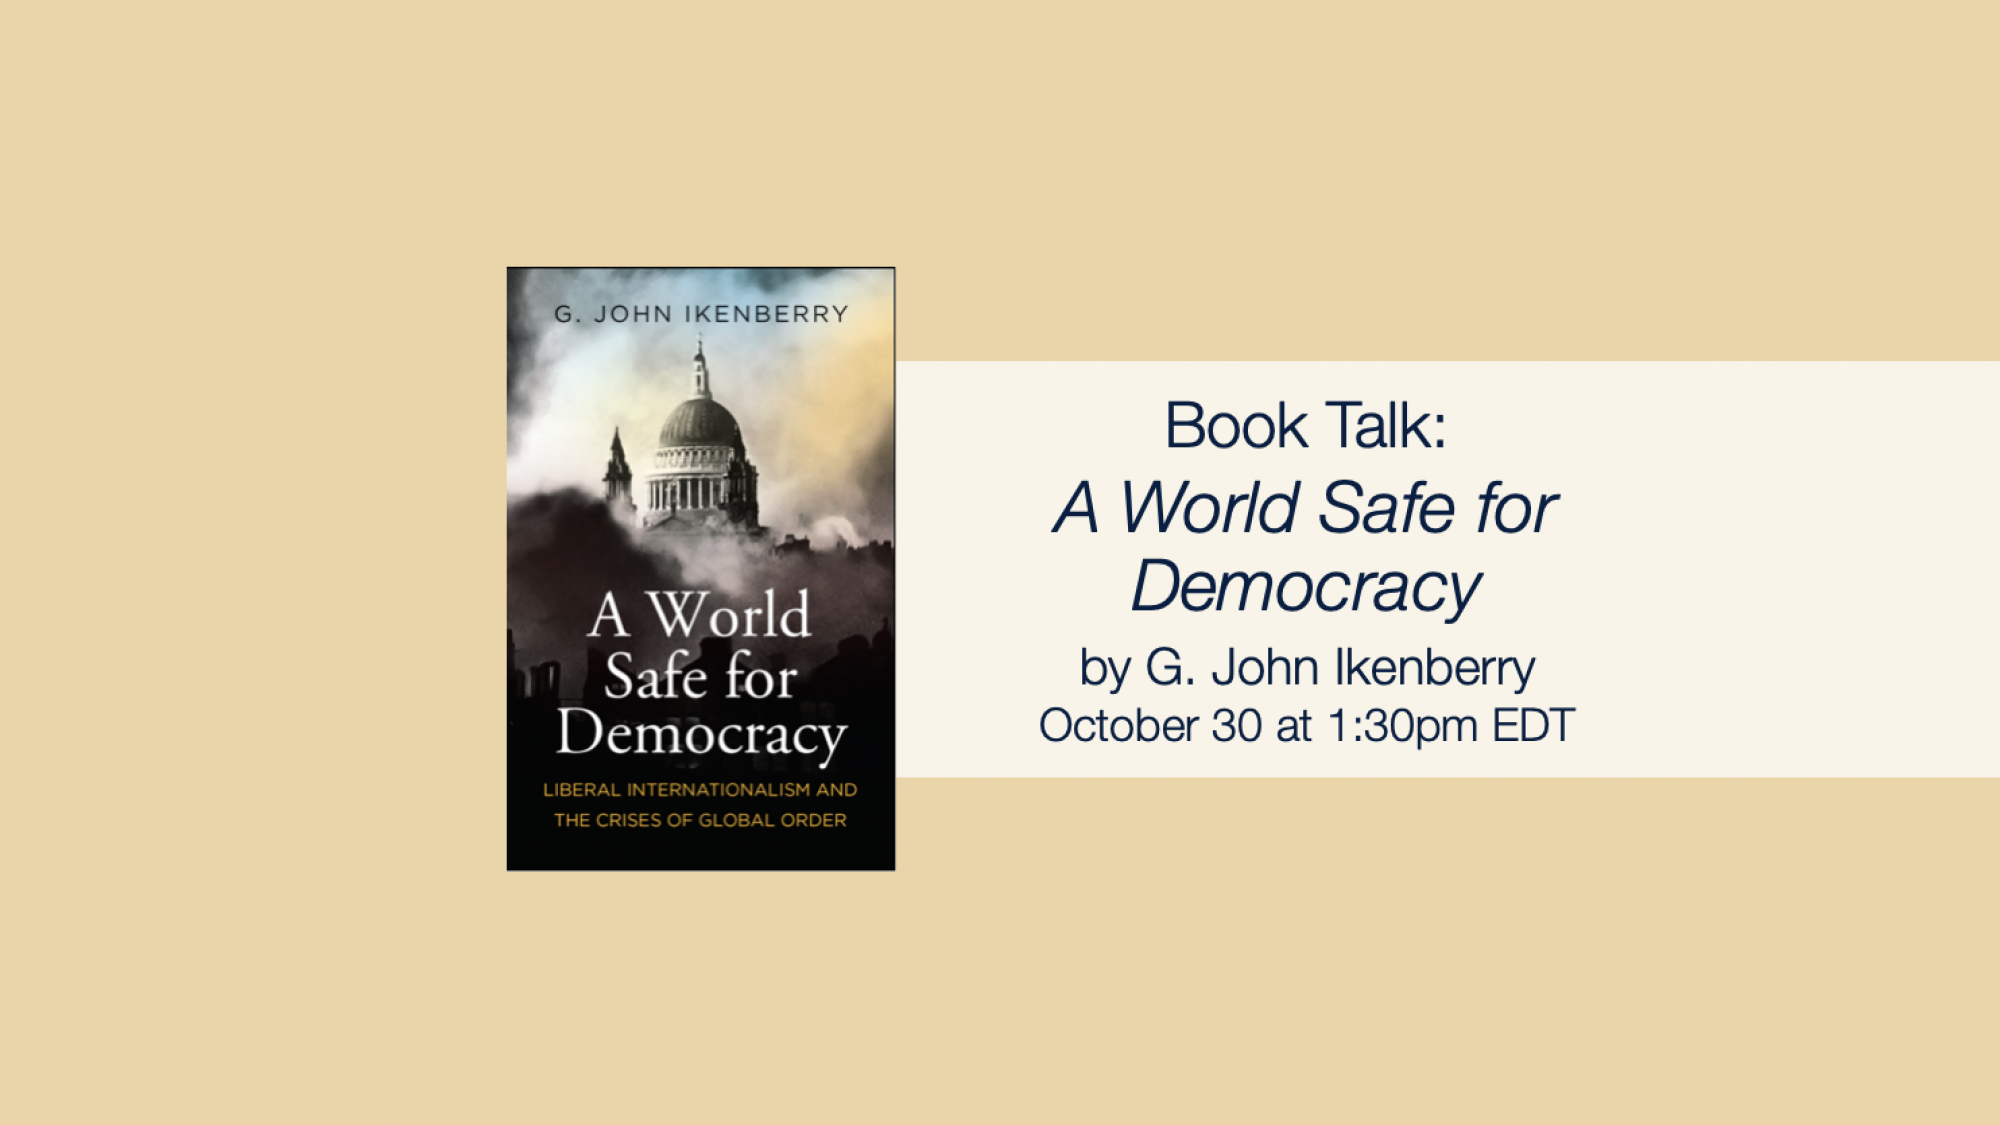 Book Talk: A World Safe for Democracy by G John Ikenberry on October 30 at 1:30pm EDT